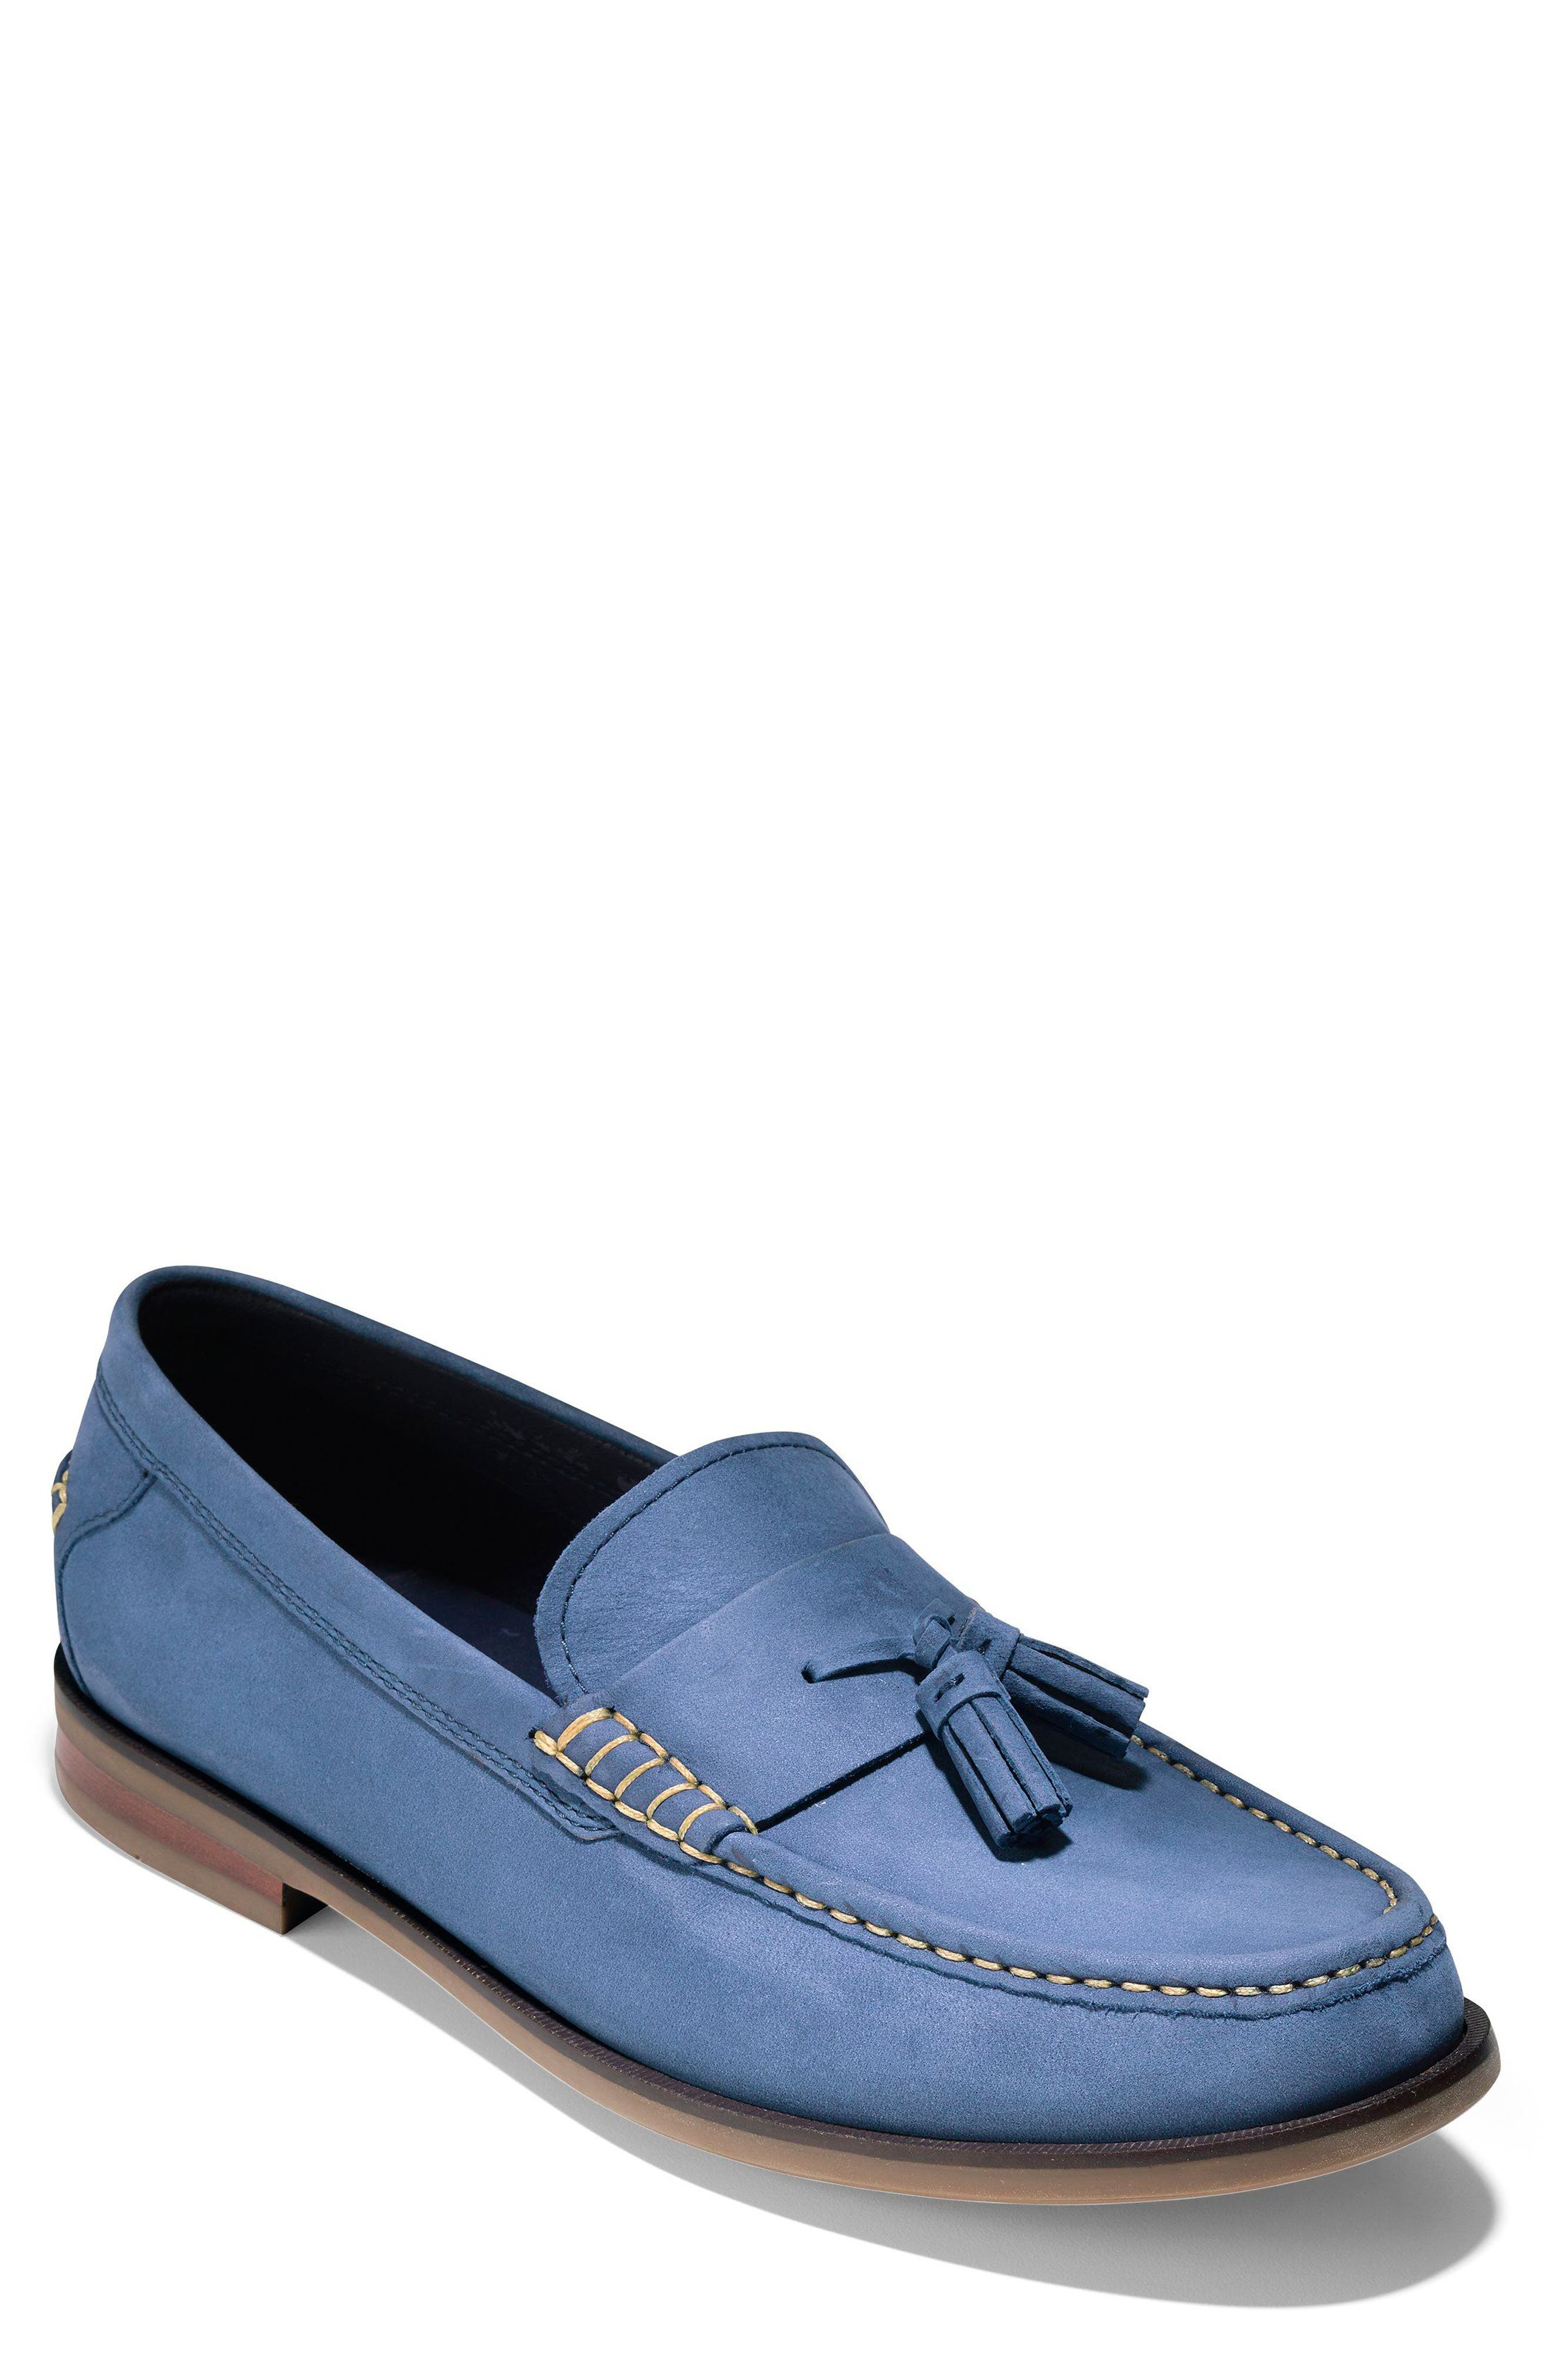 Pinch Friday Tassel Loafer,                             Main thumbnail 1, color,                             400